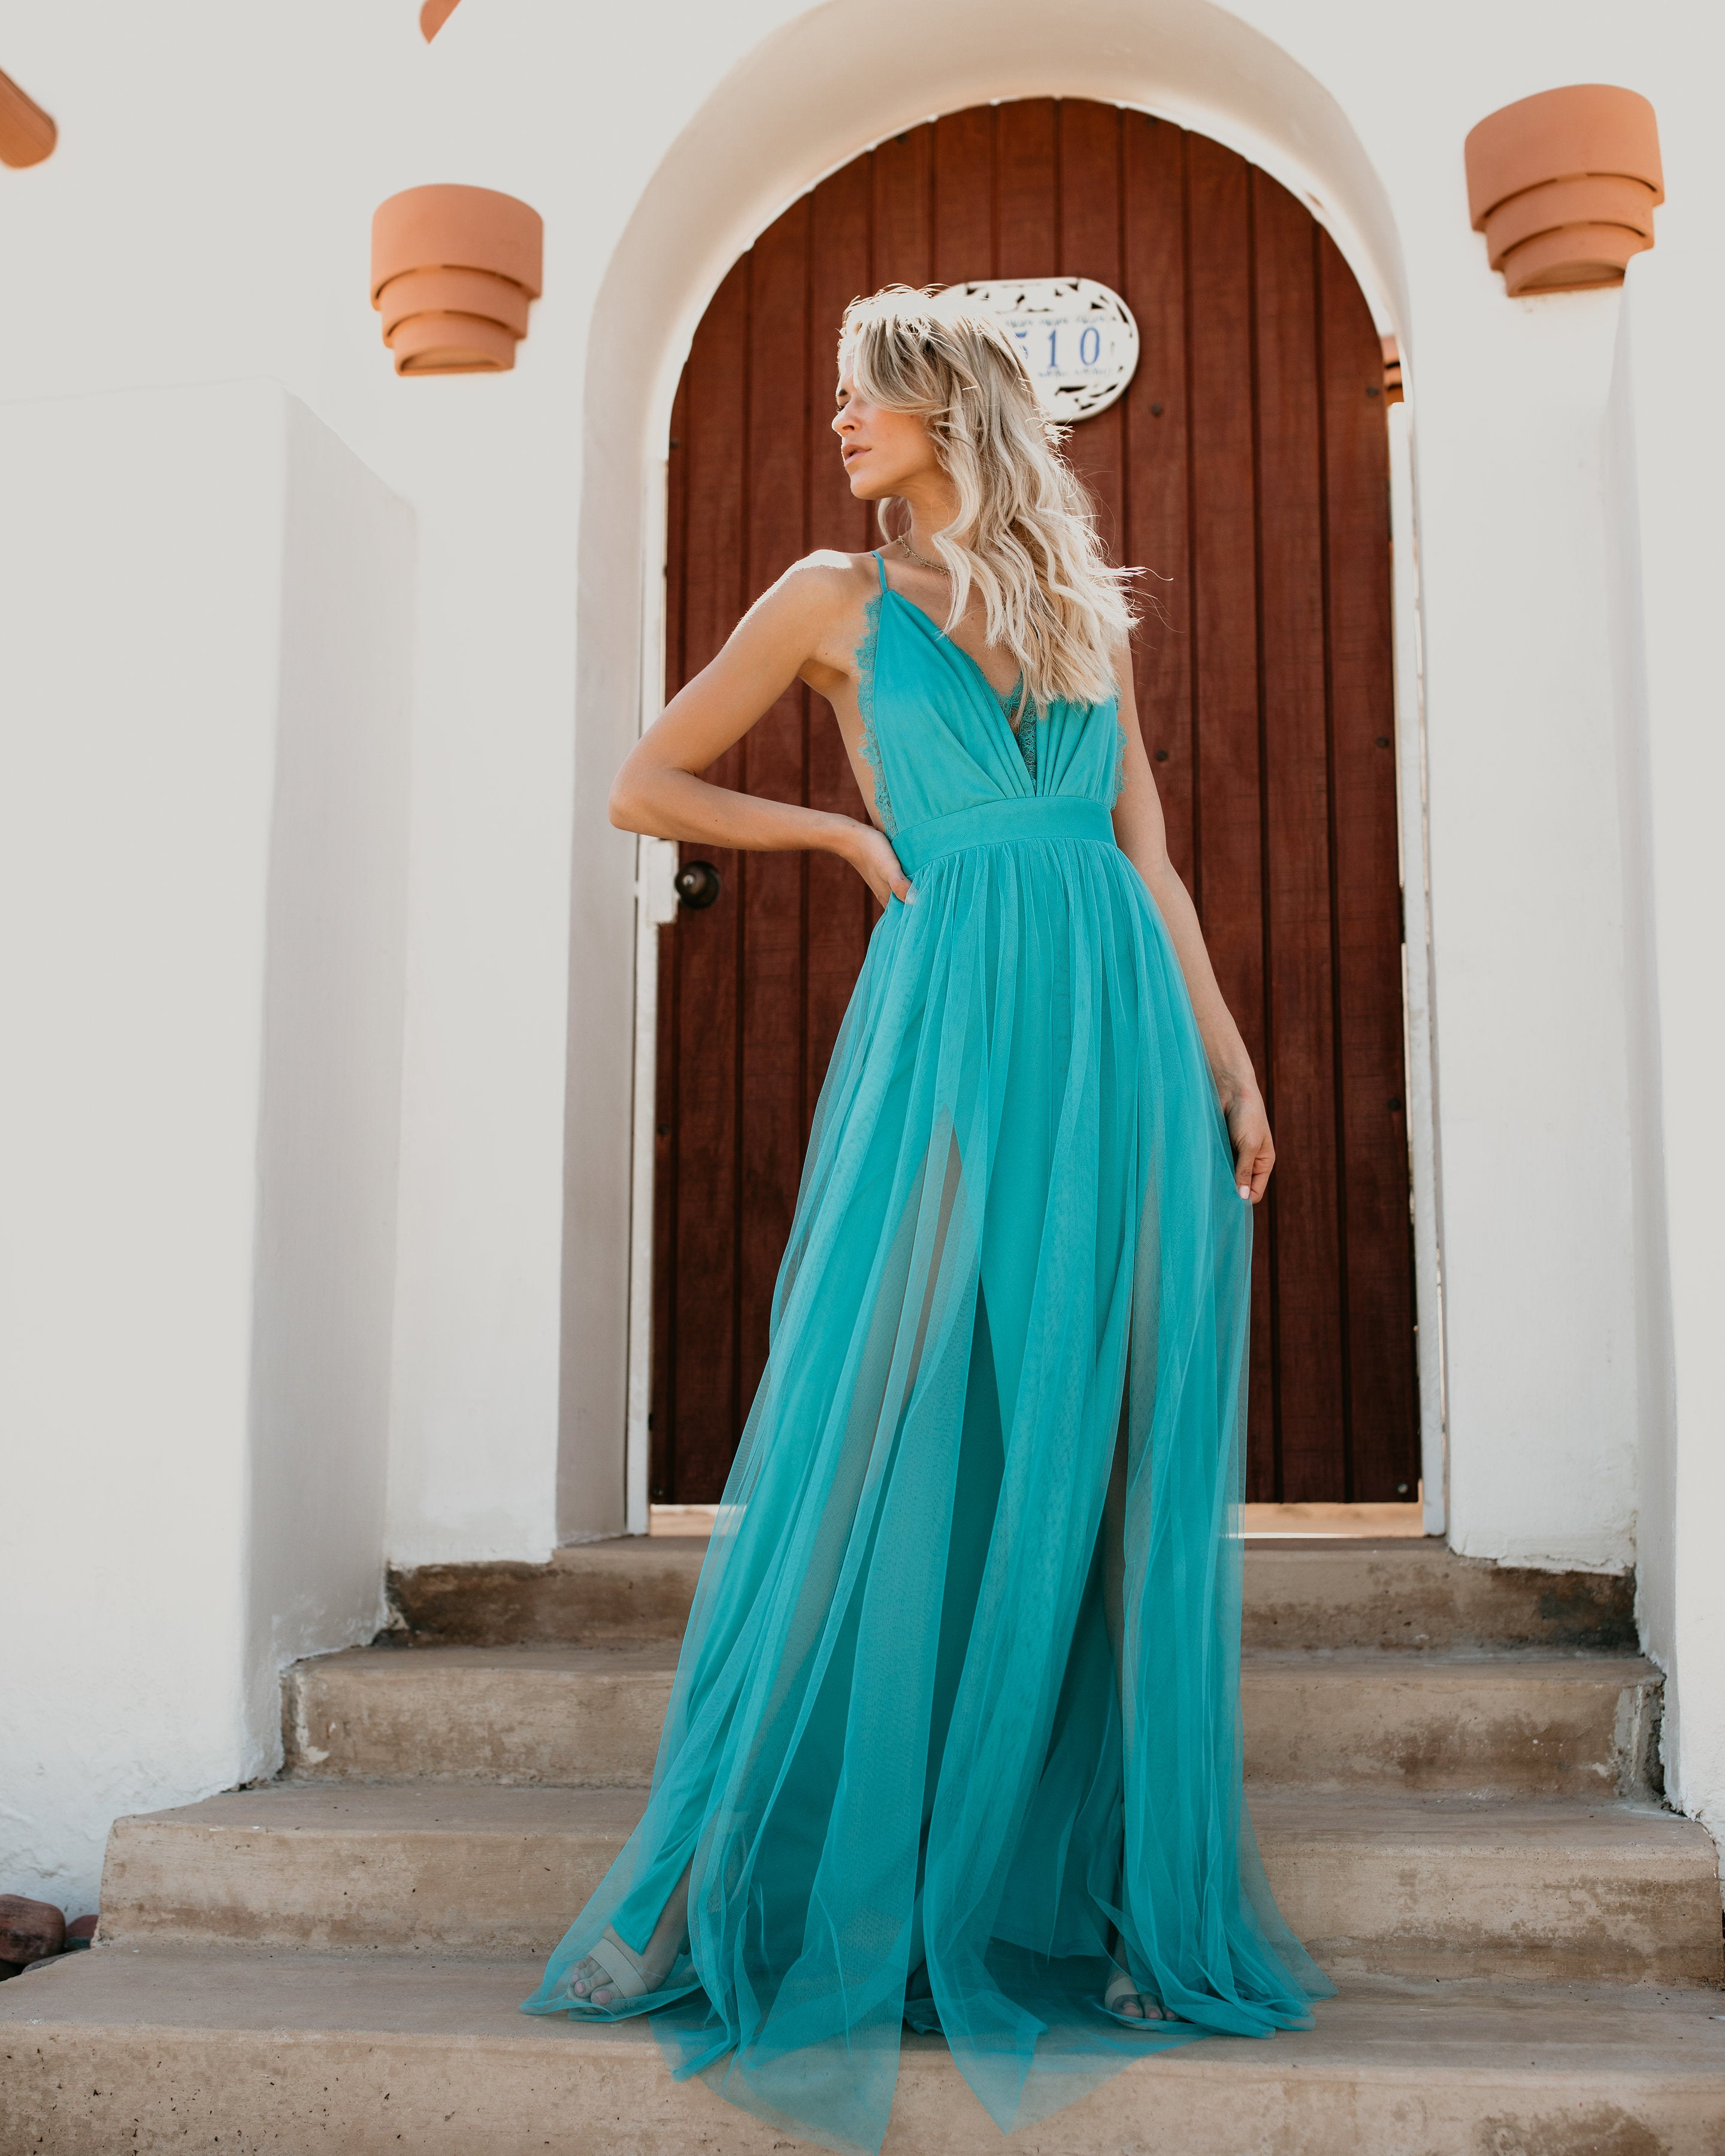 Talk Of The Town Maxi Dress - Teal – VICI